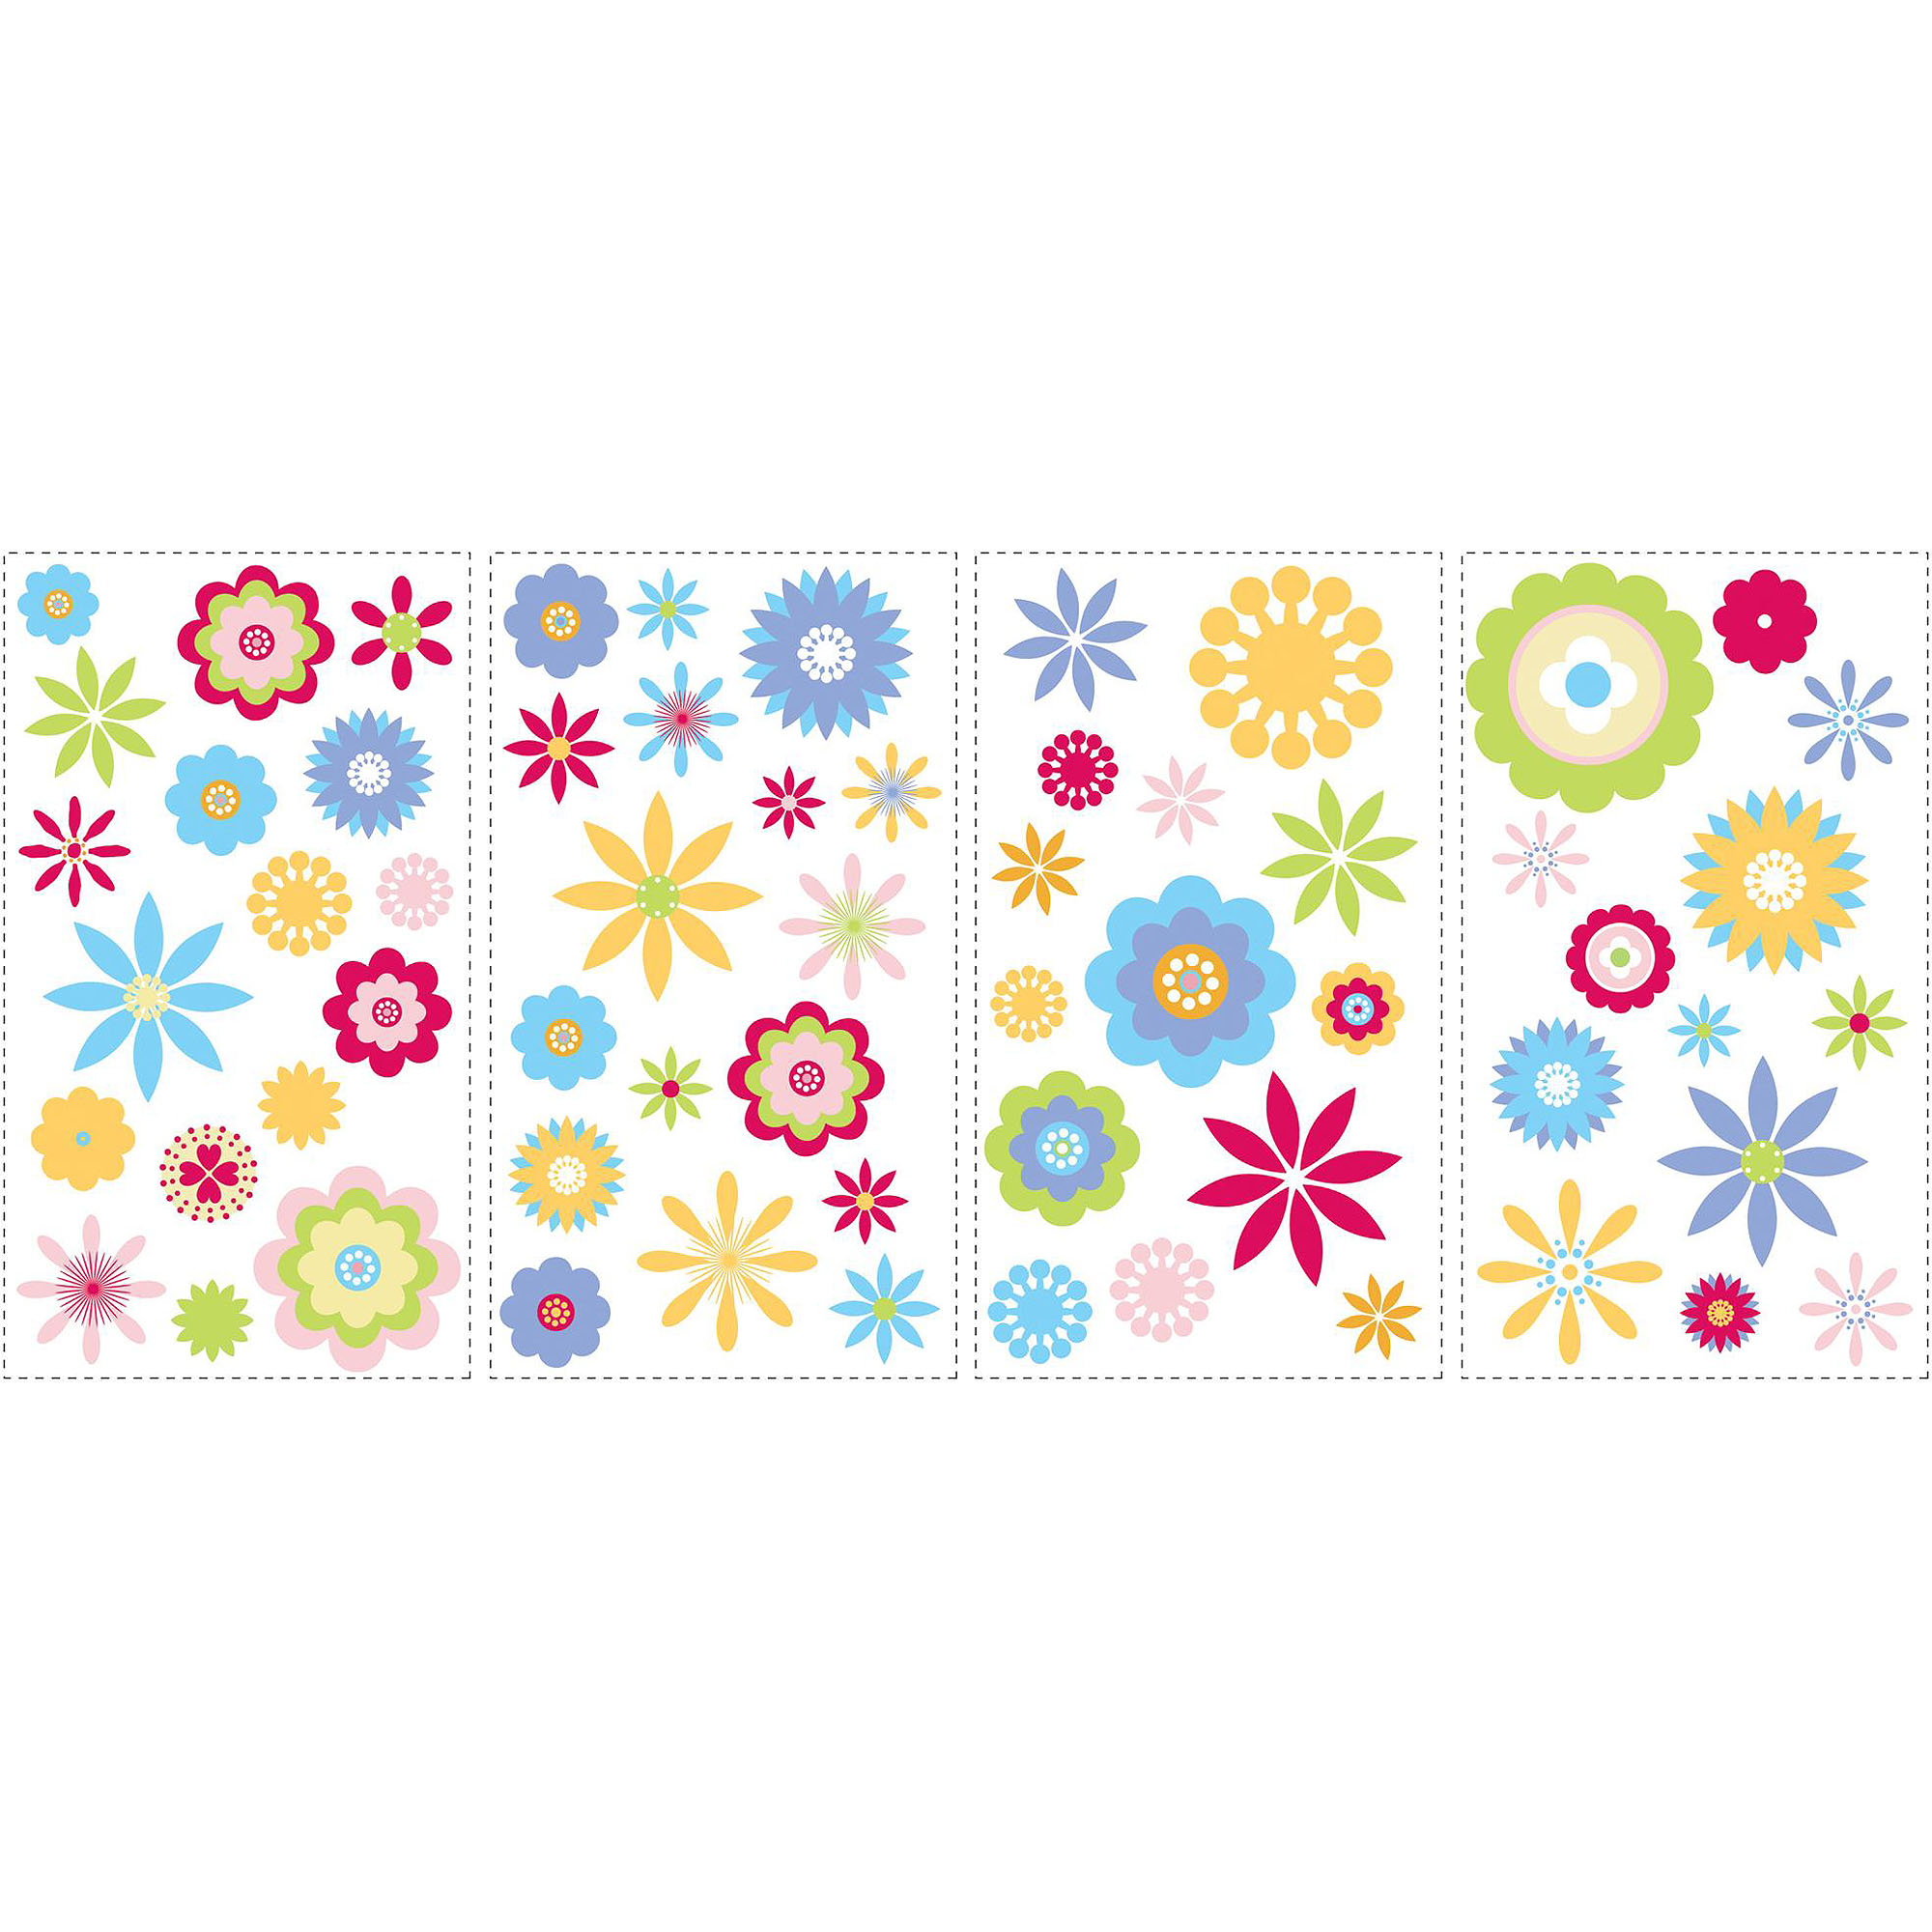 RoomMates Graphic Flowers Peel and Stick Wall Decals